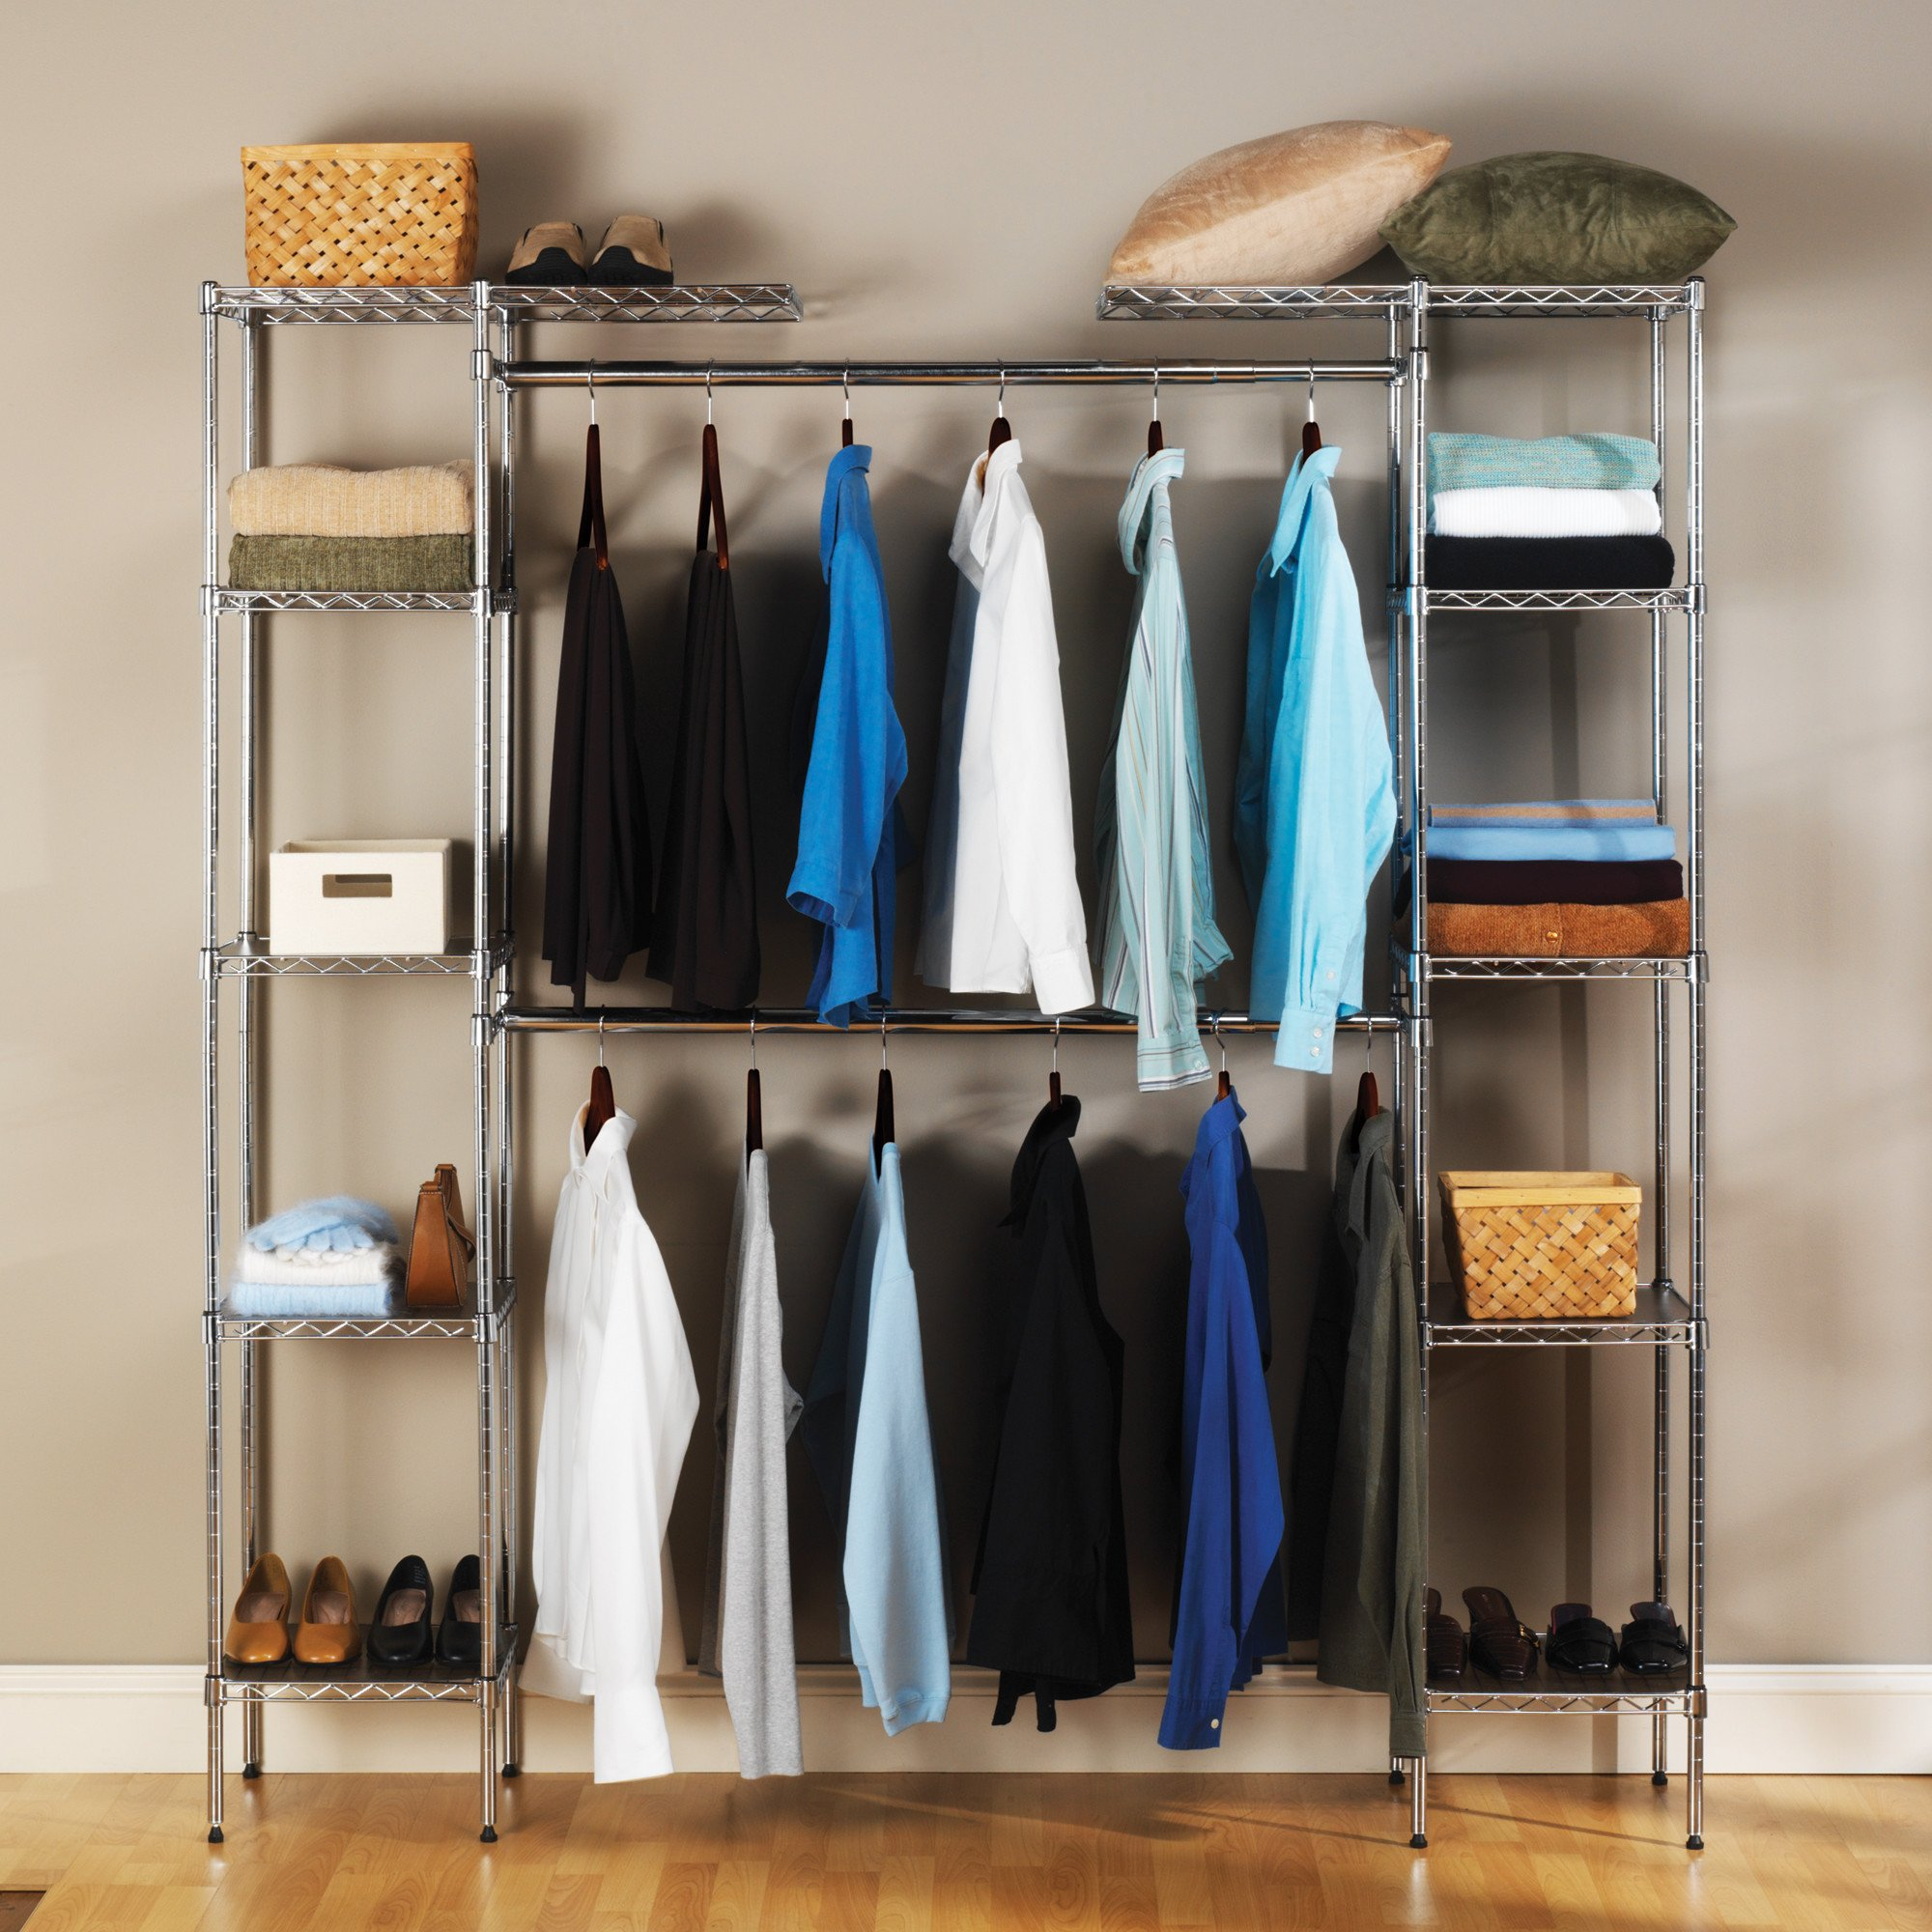 Seville Classics 14'' Deep Heavy Duty Steel Wire Expandable Closet Organizer - Bedroom Space Saving - Free Standing Cloth Rack - Adjustable Height of Shelves, Hanging-rods and Width - 10 Years Limited Warranty